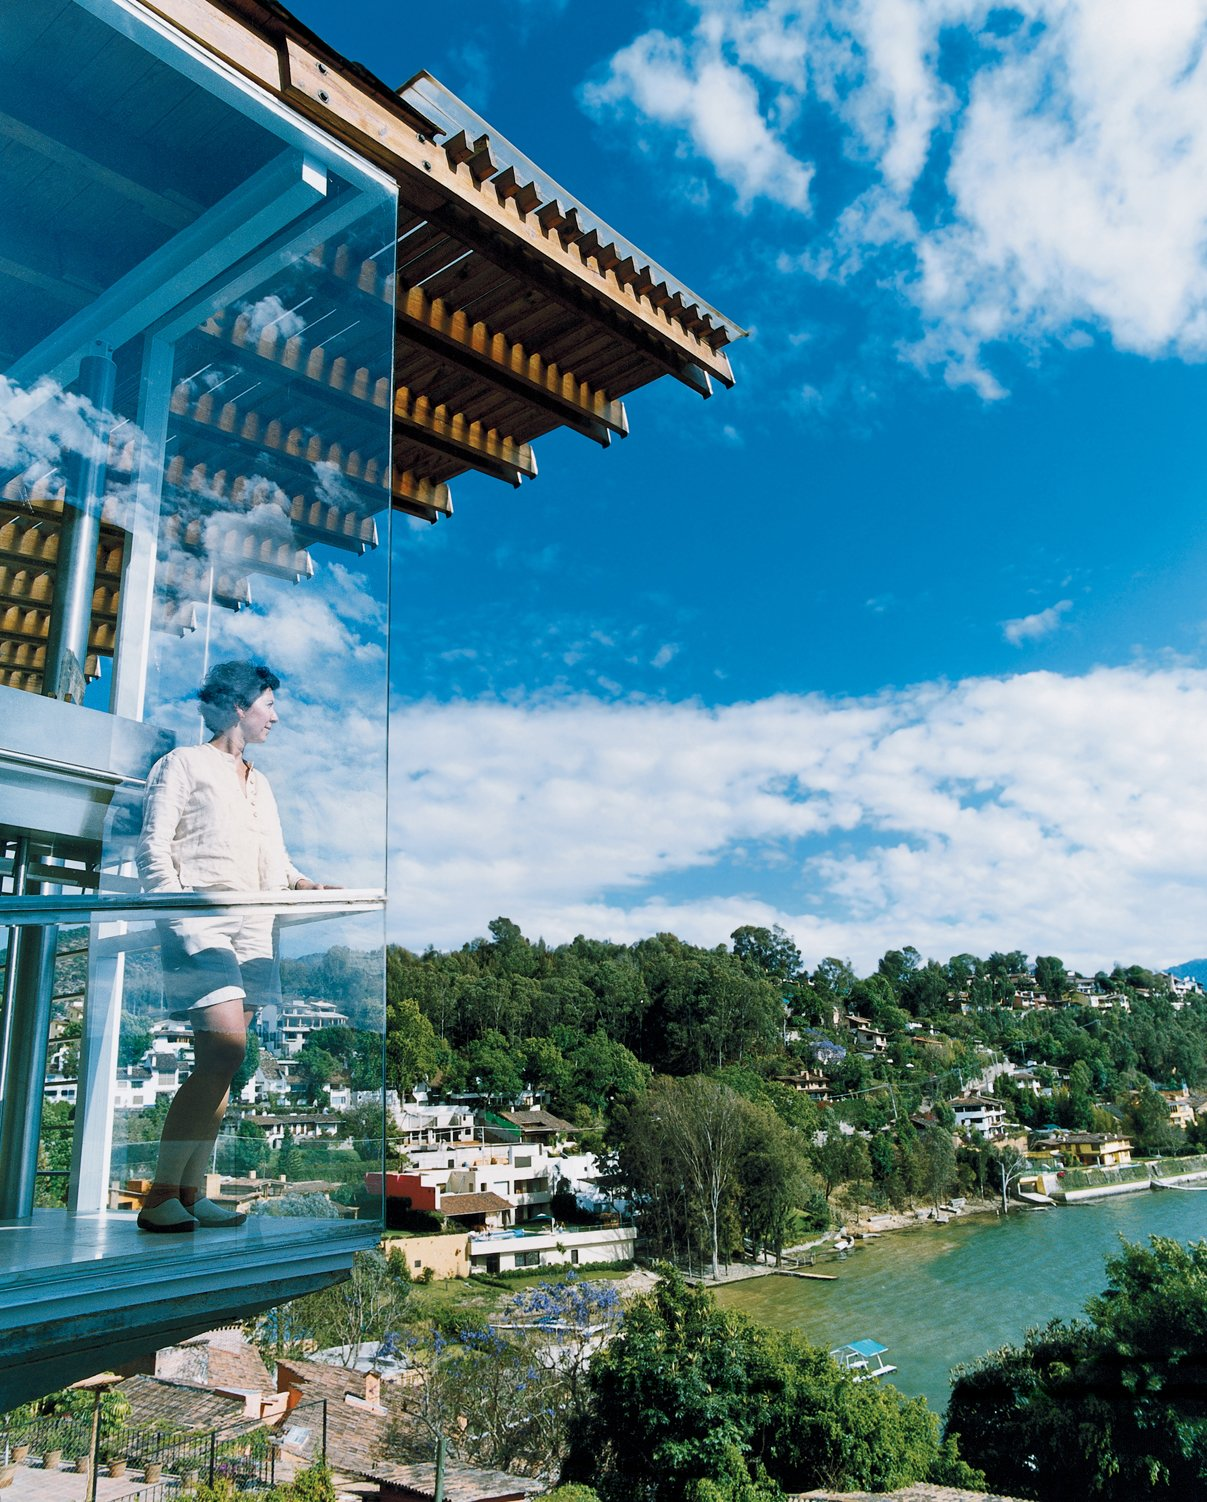 For his lakeside retreat just outside Mexico City, architect Bernardo Gomez-Pimienta designed everything from the house to the chairs to the china. Here, his wife, Loredana Dall' Amico, checks out the view from the balcony.